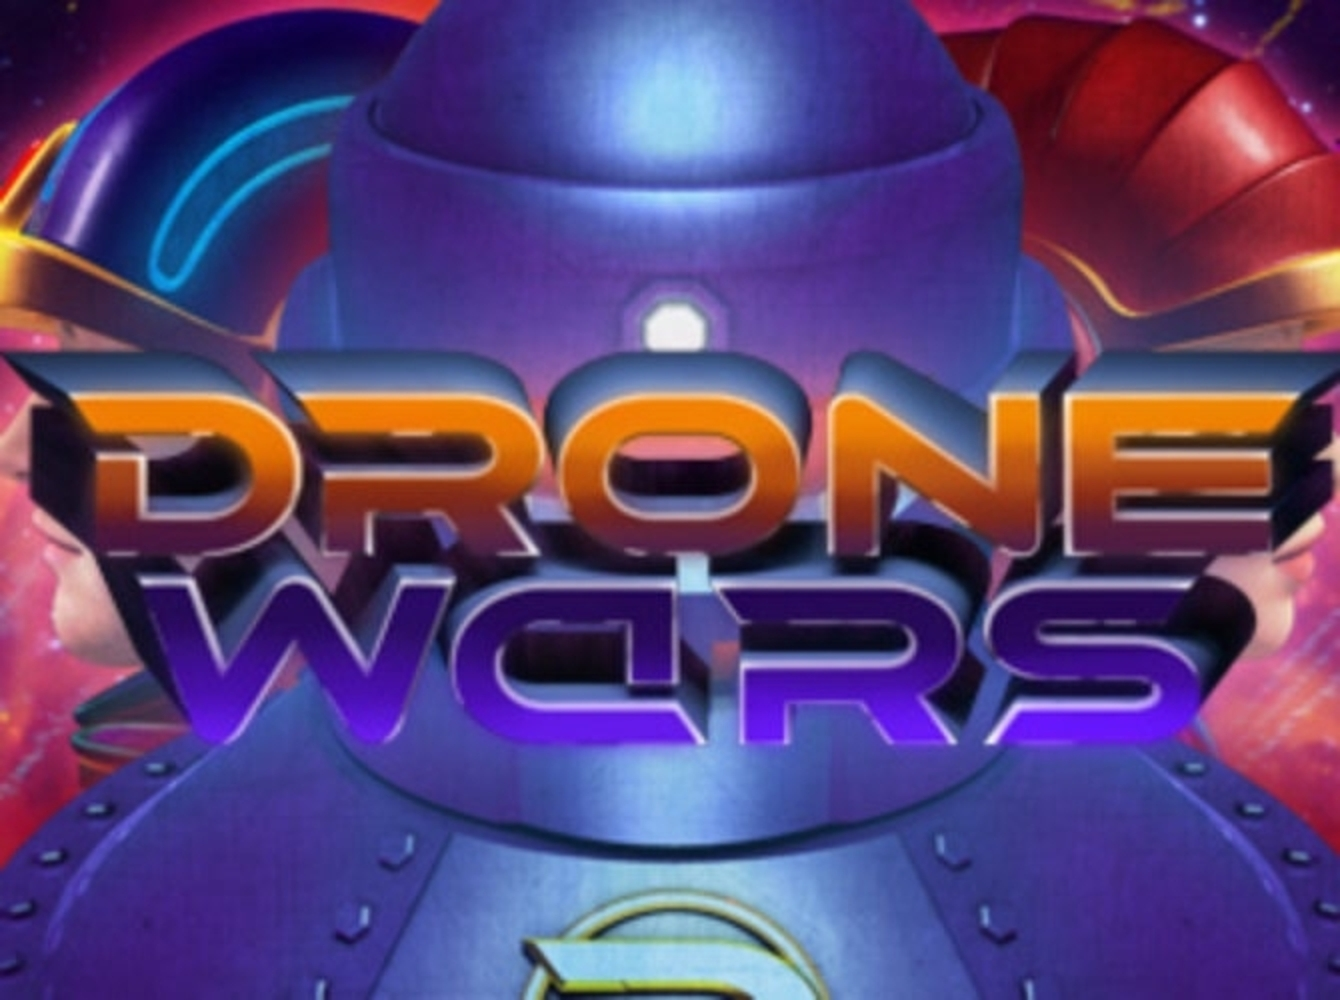 Se Drone Wars Online Slot Demo Game, Microgaming